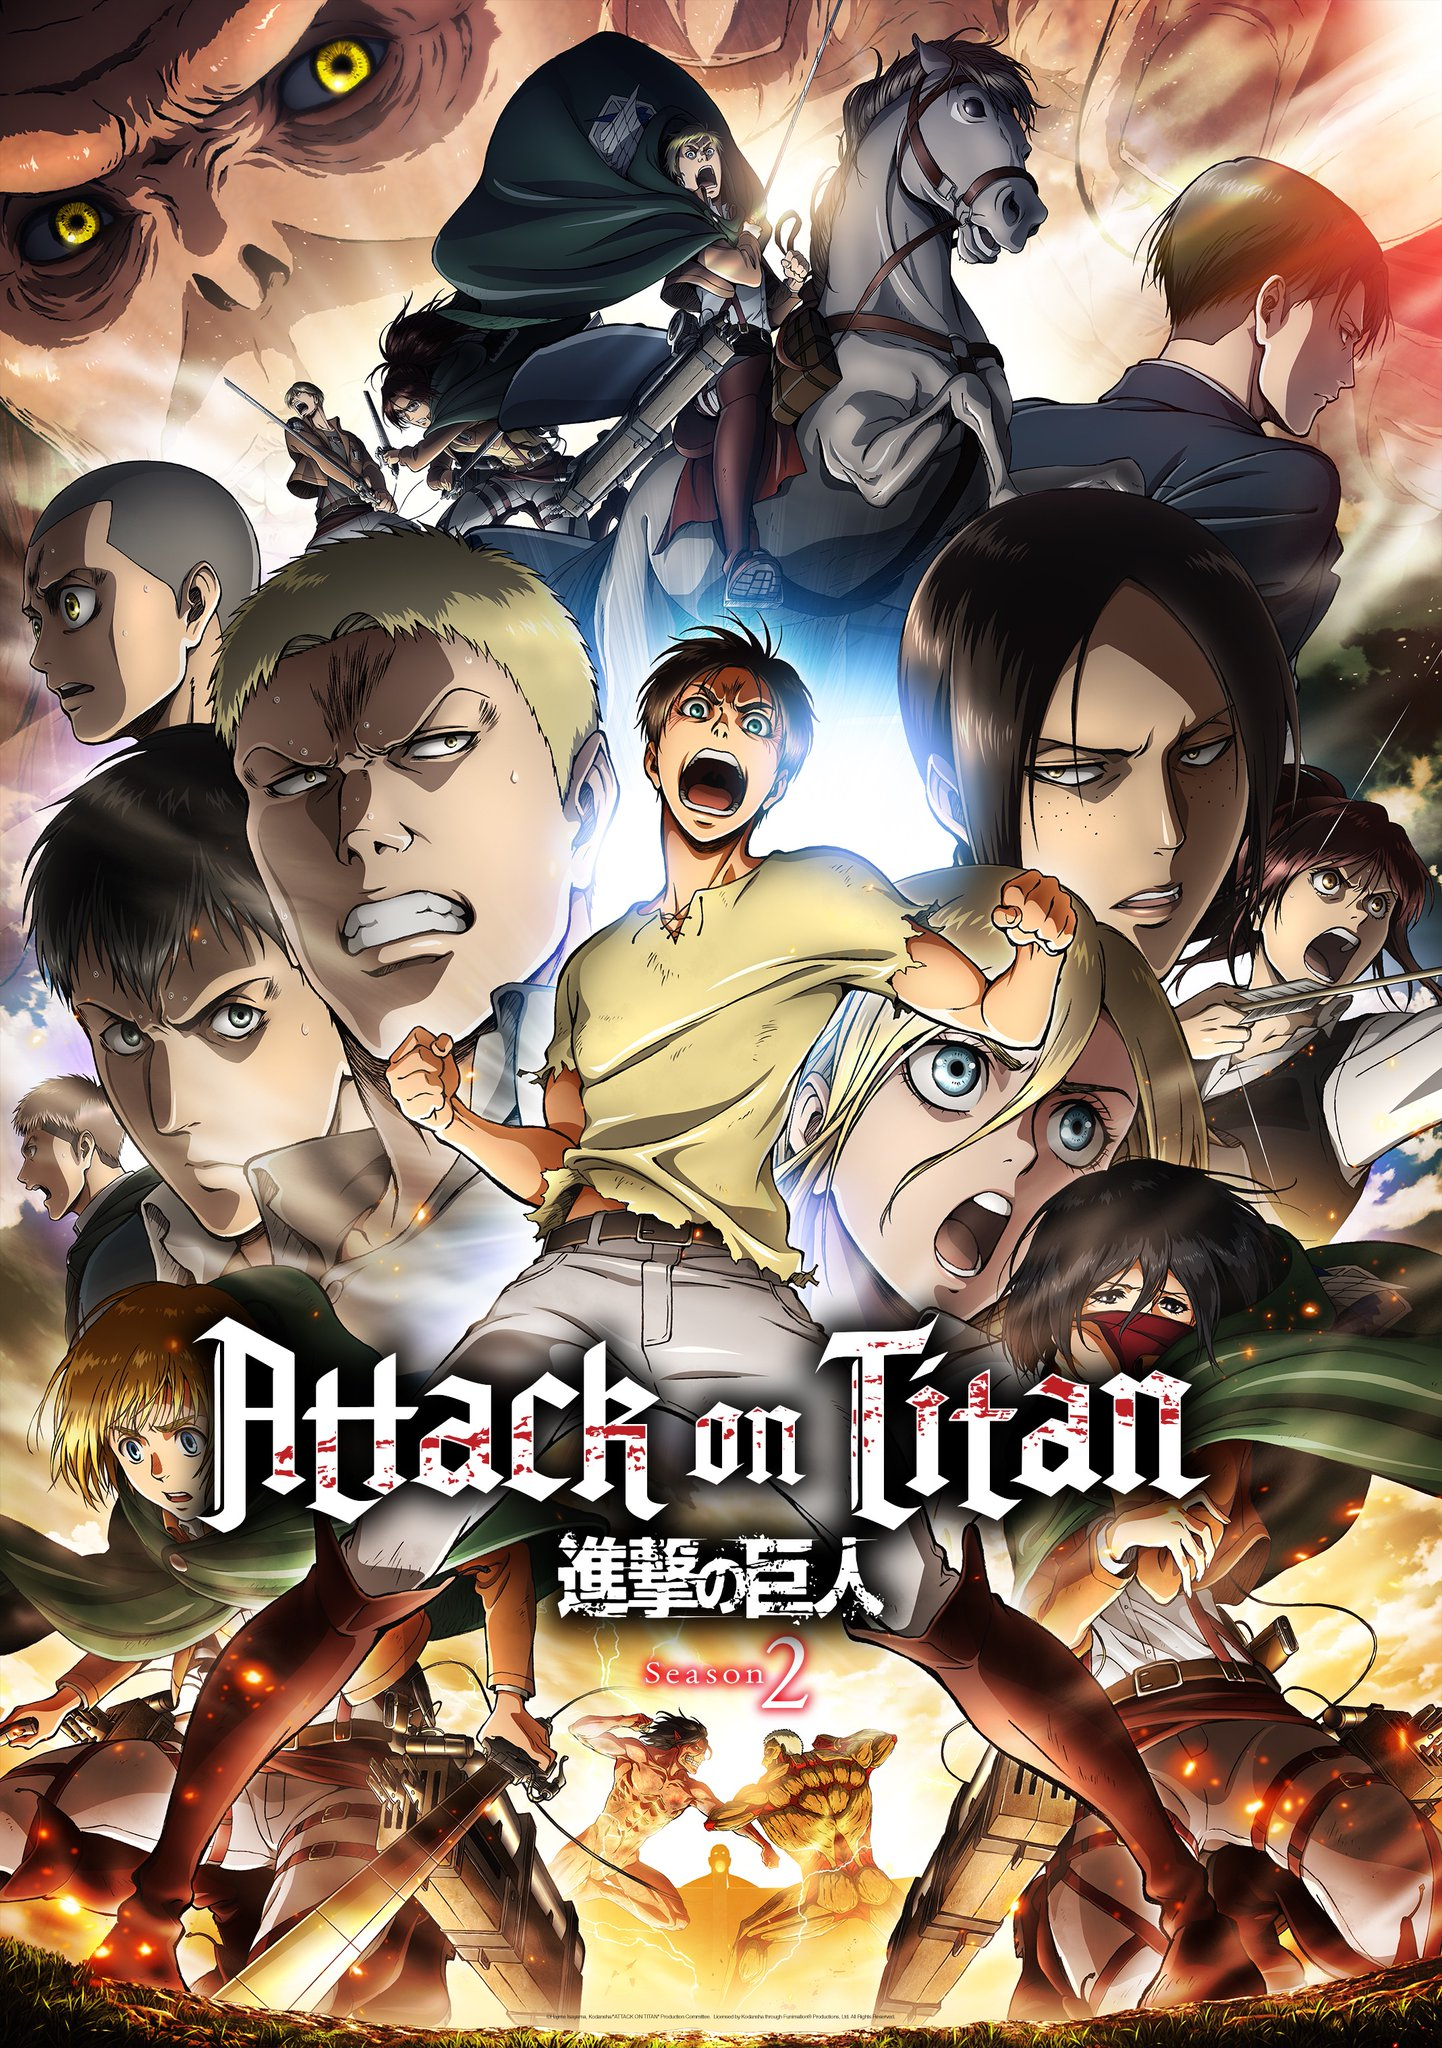 Attack on Titan season 2 premiere date announced